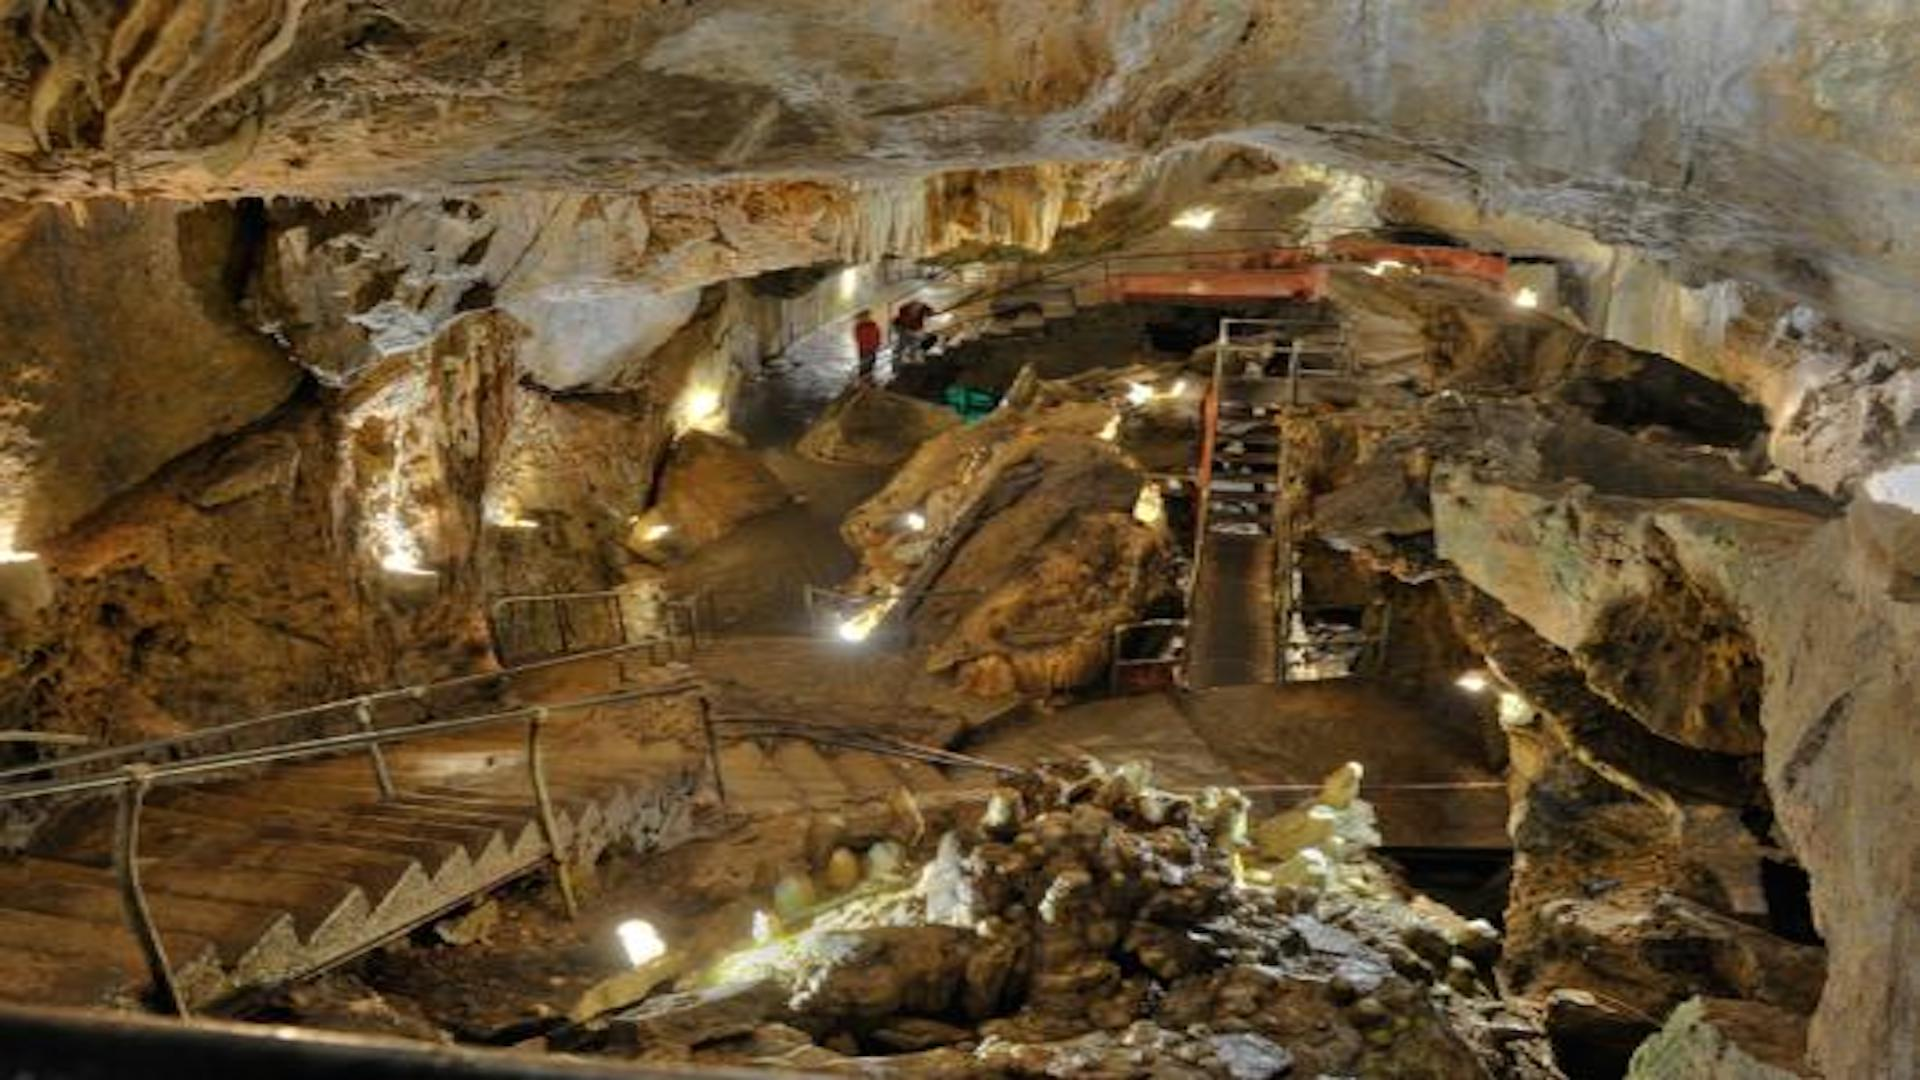 Image courtesy of Crystal Cave